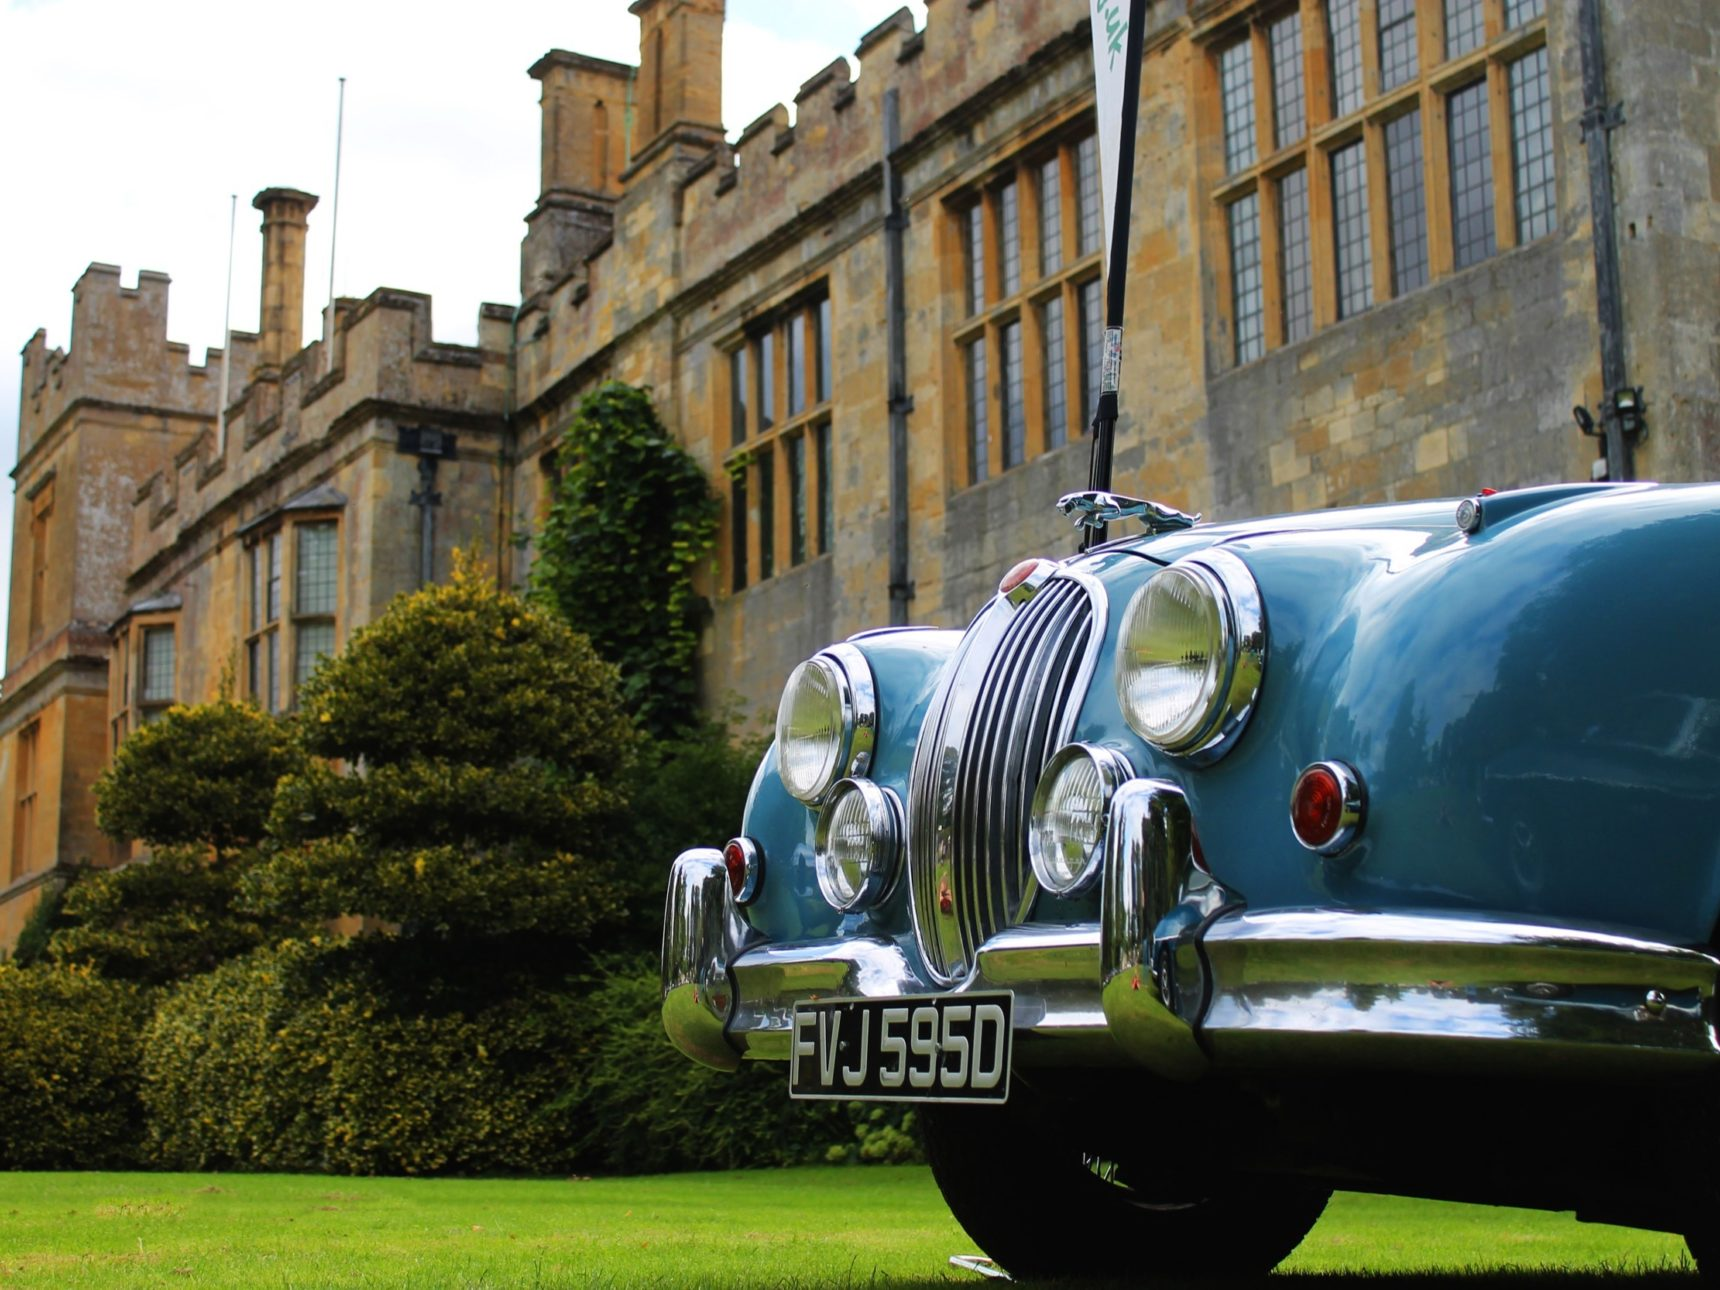 A close up shot of a teal coloured vintage car in front of the castle